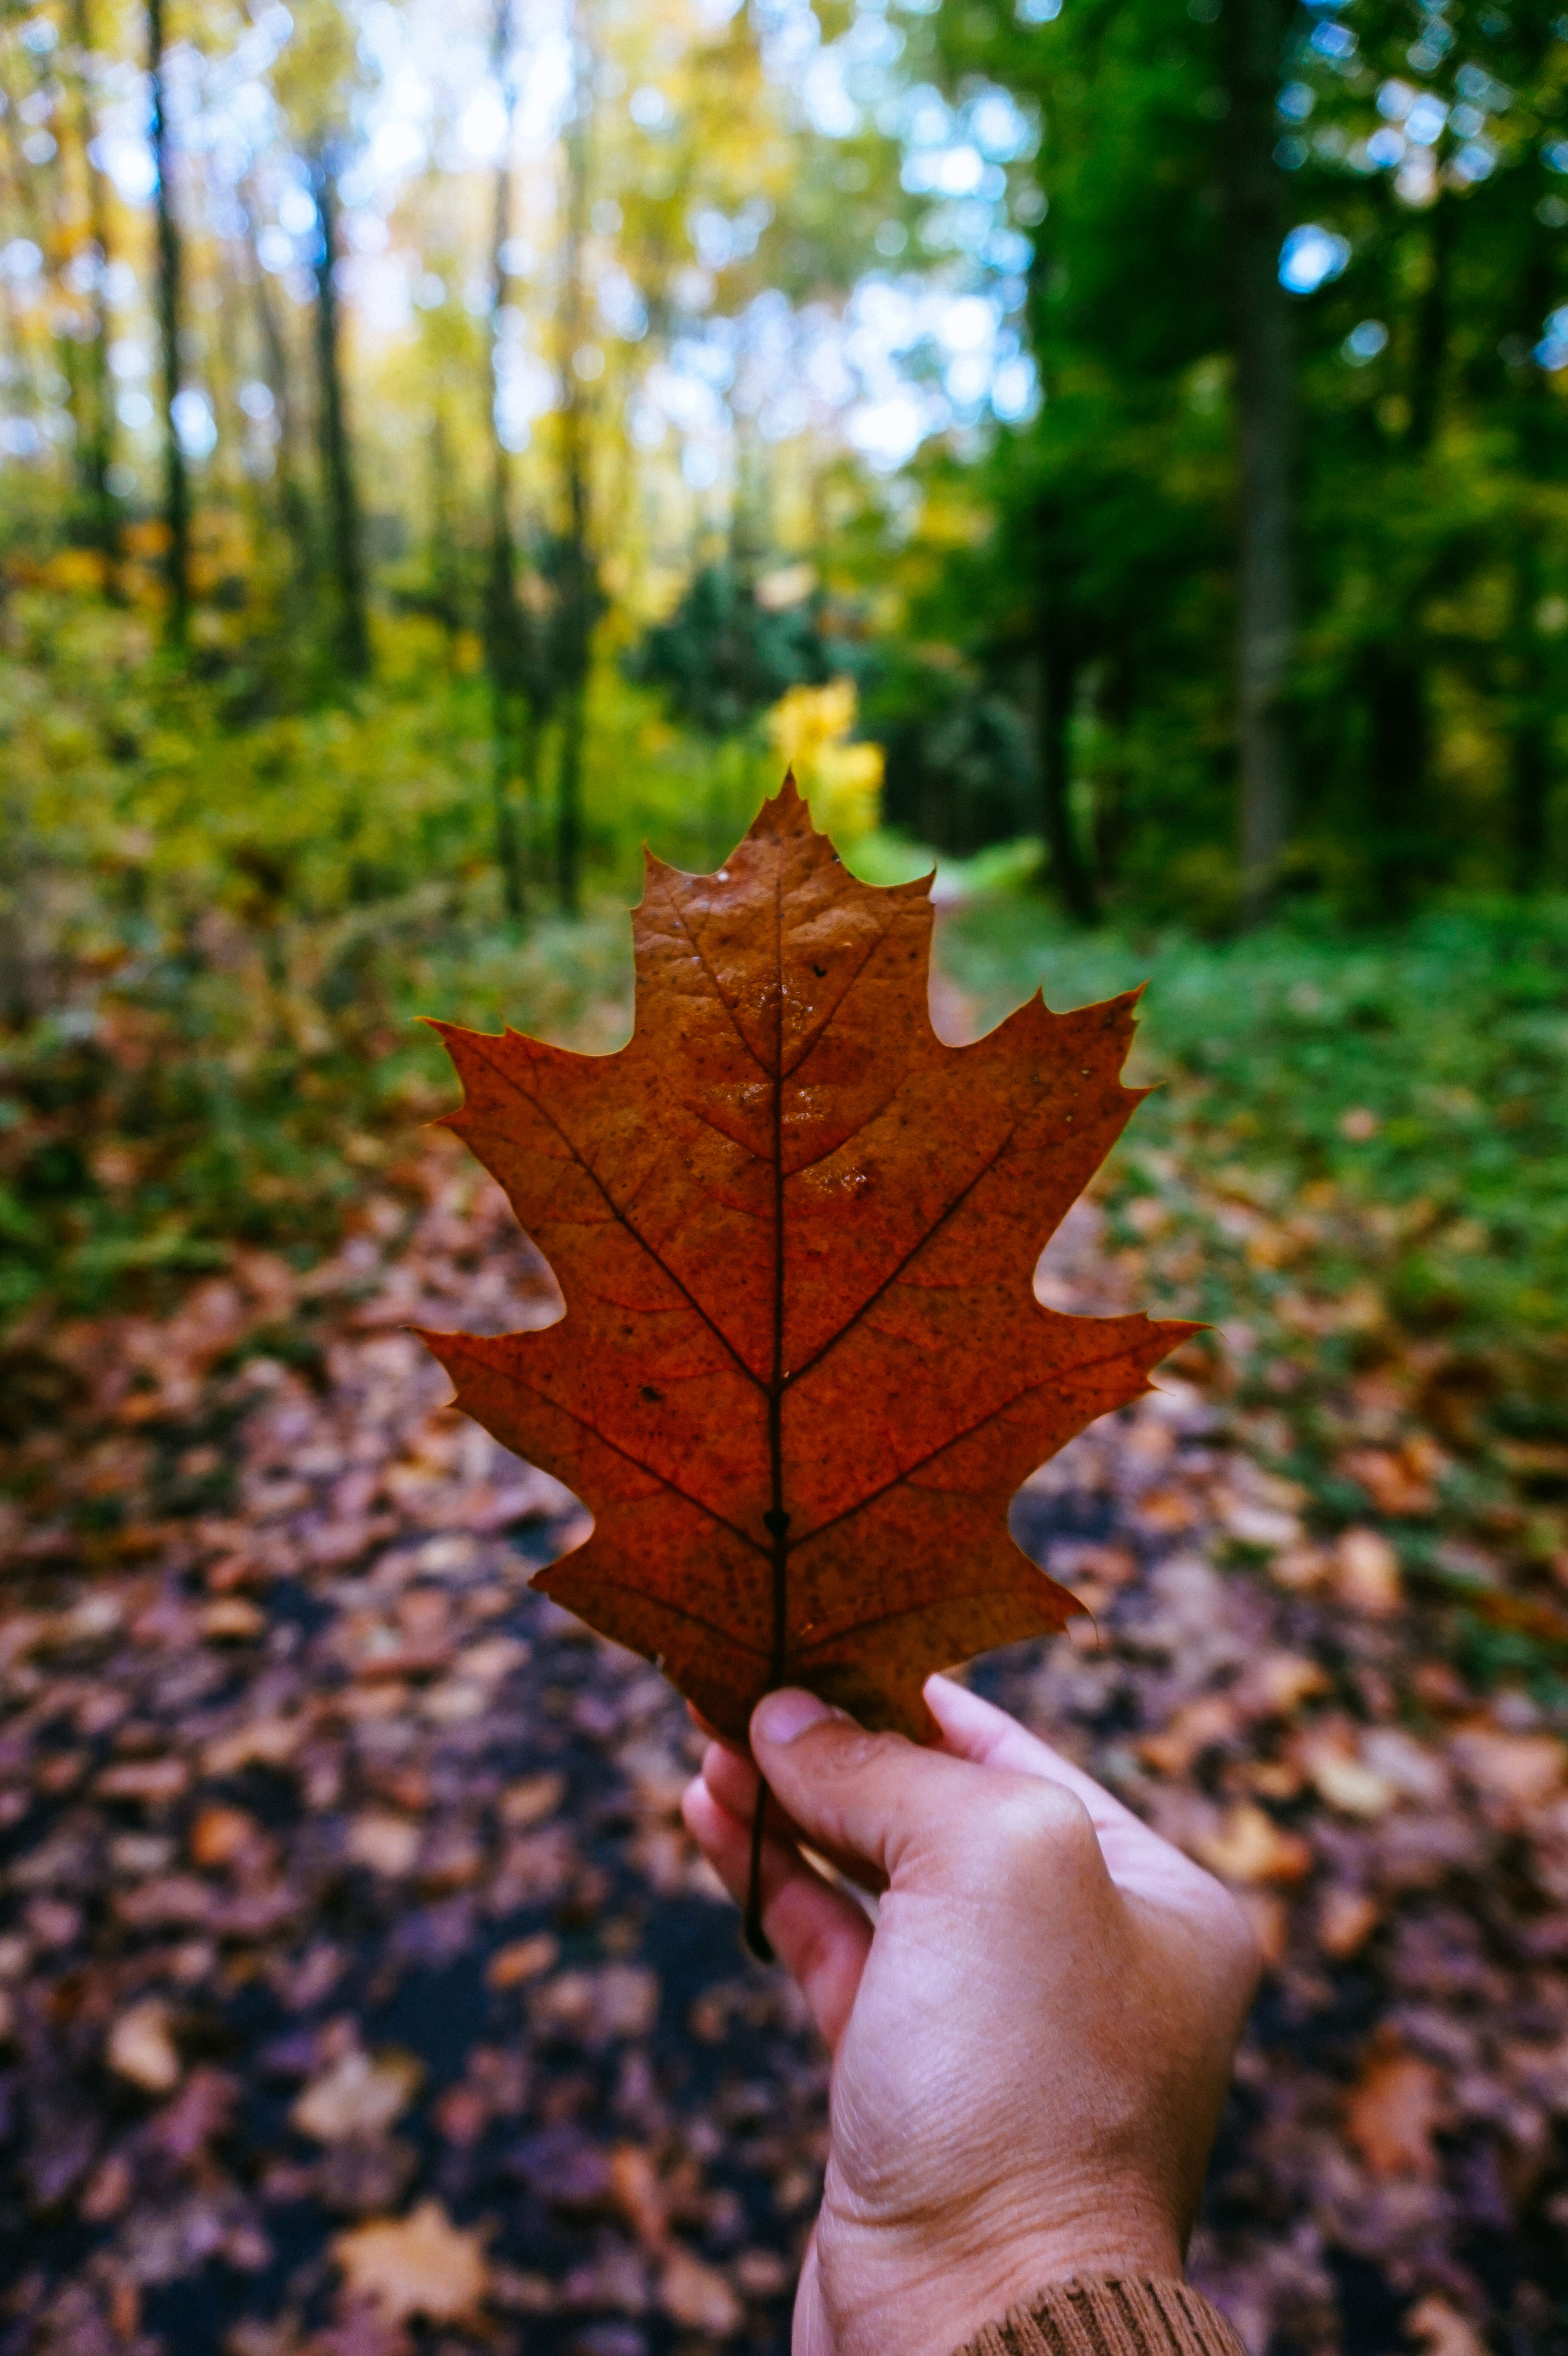 Custom Wallpapers For Iphone X Yellow Leaf 183 Free Stock Photo